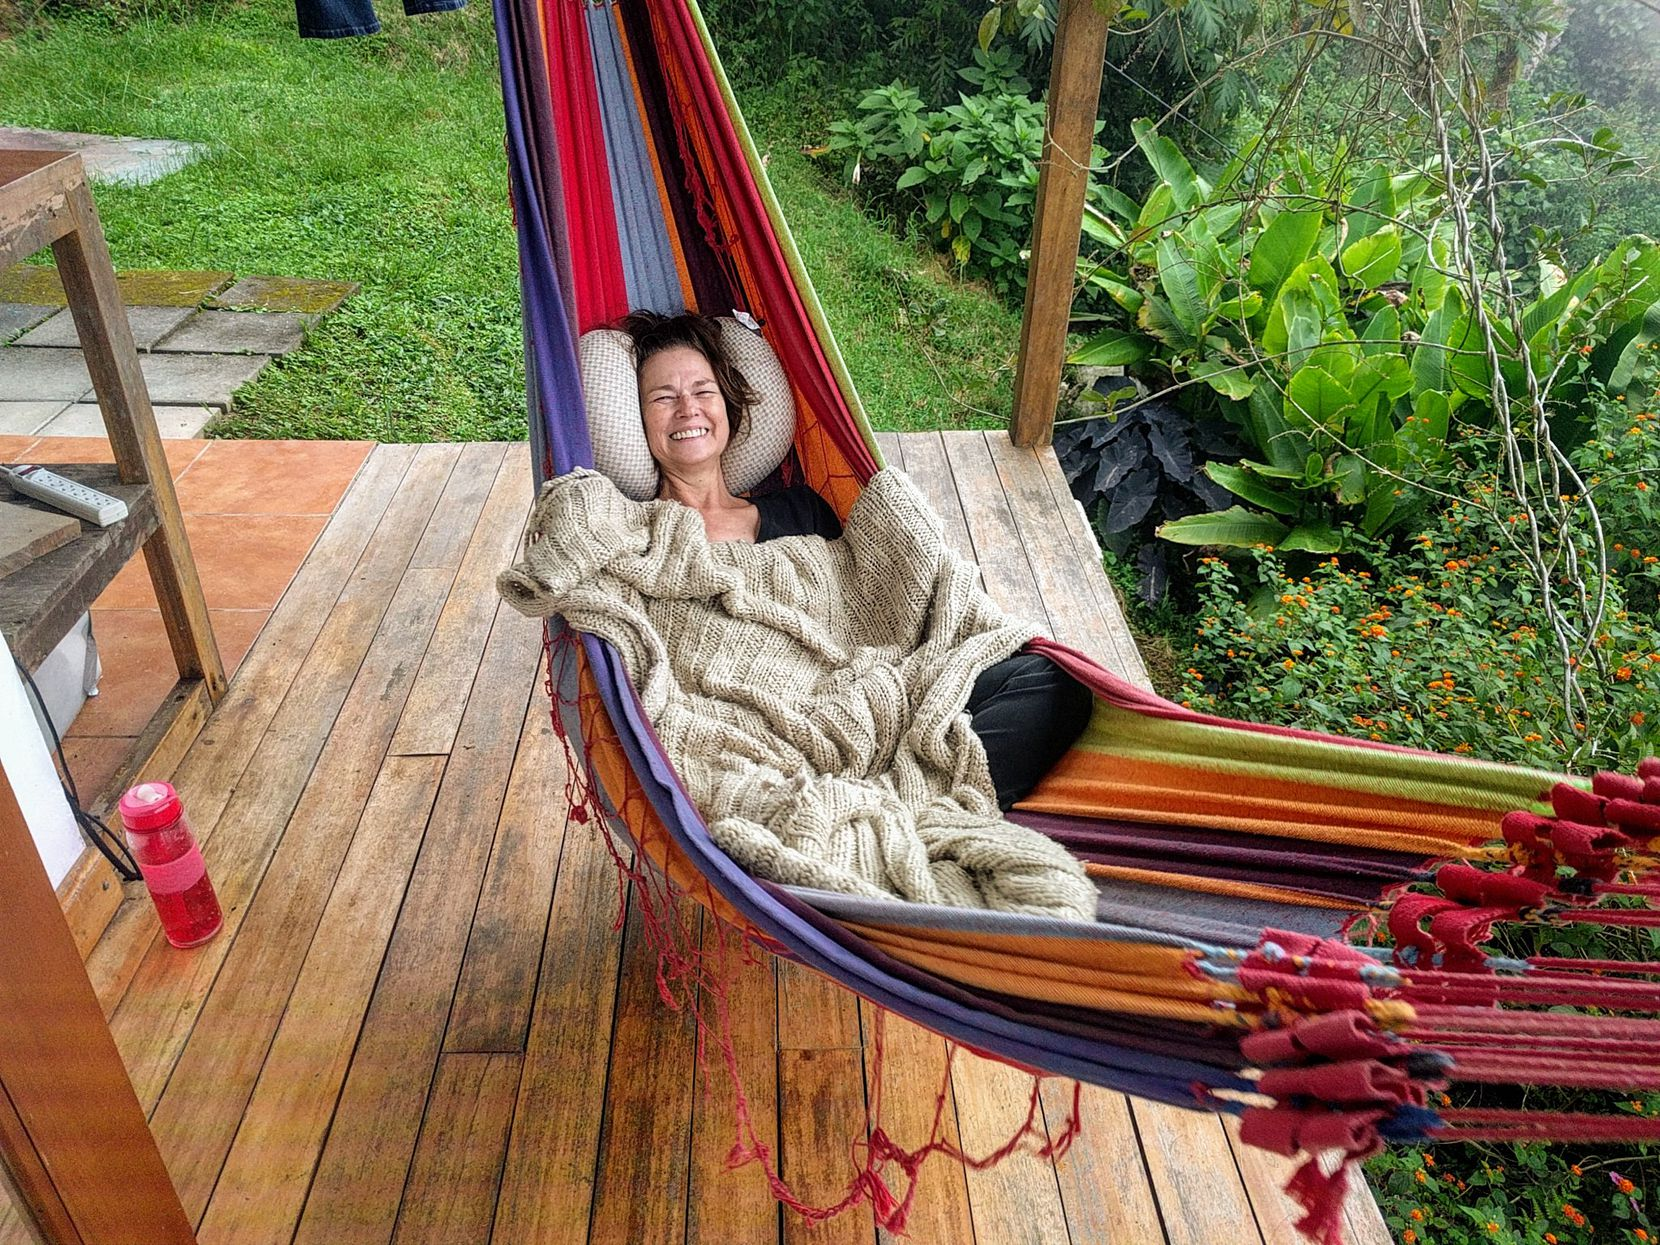 Laura Huebner in Costa Rica, where she and Barry Kooda imagined they would one day move.